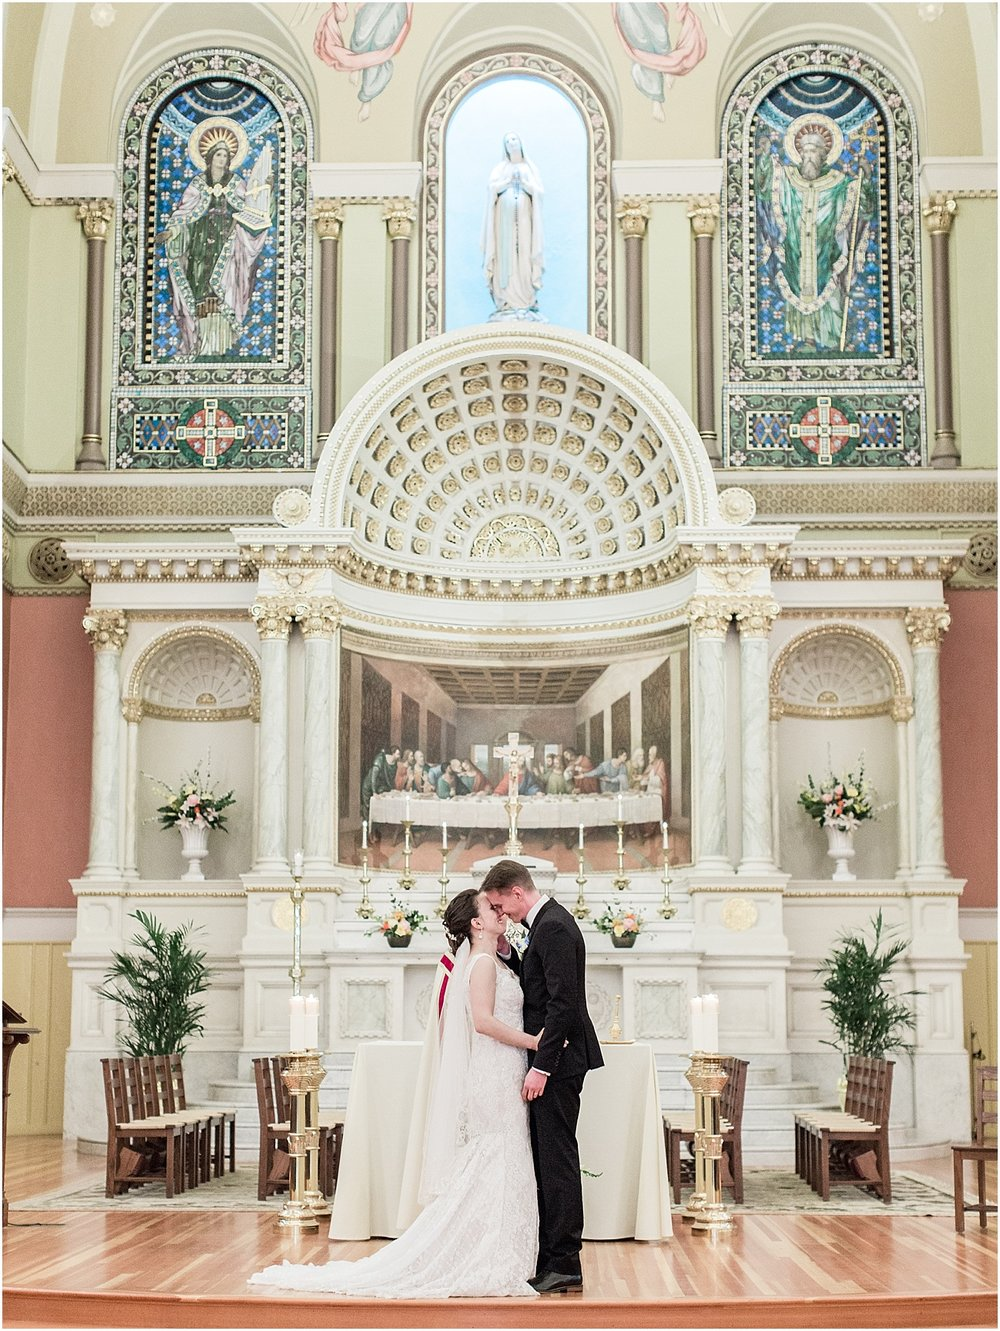 mariana_dylan_the_state_room_downtown_boston_wedding_photographer_meredith_jane_photography_photo_0131.jpg